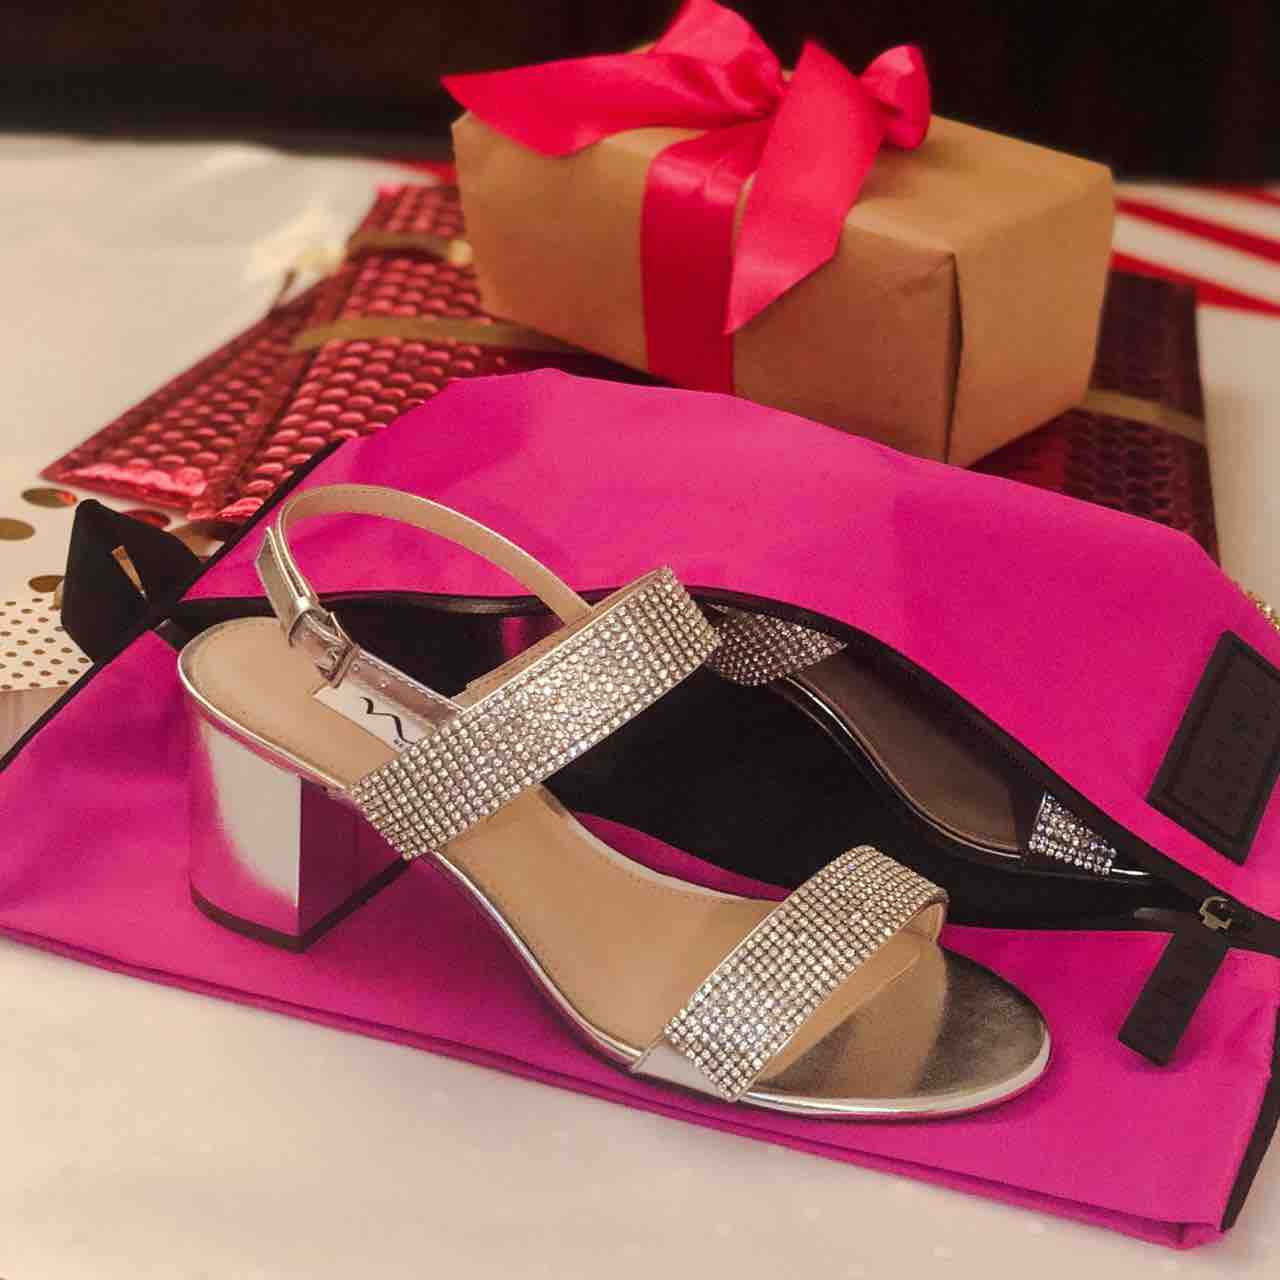 Our Guide To The Best Gift Ideas For Women